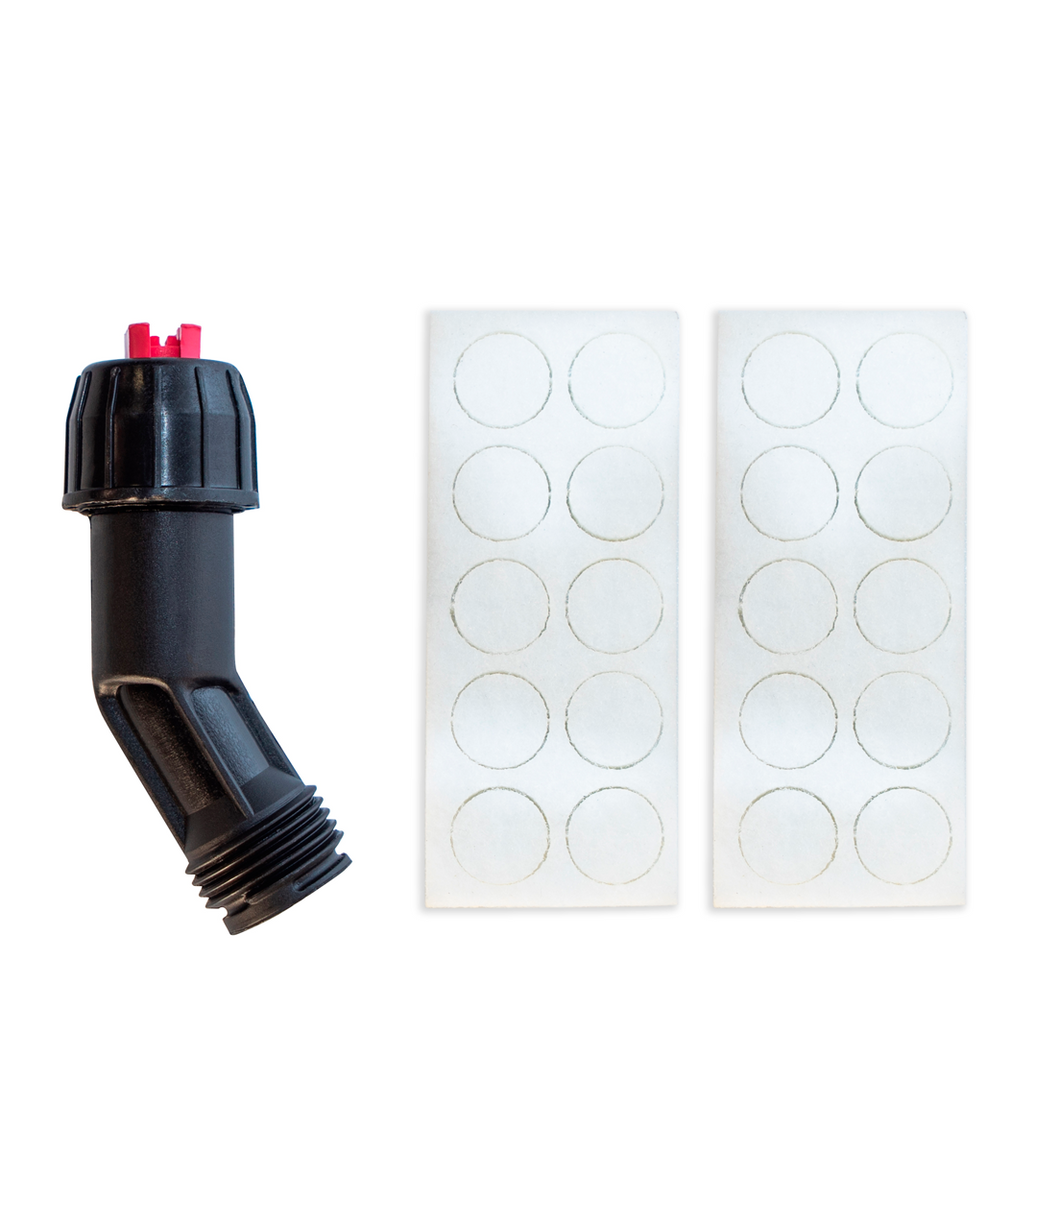 Foam and Angled Nozzle Kit for Foam Pro 9-12